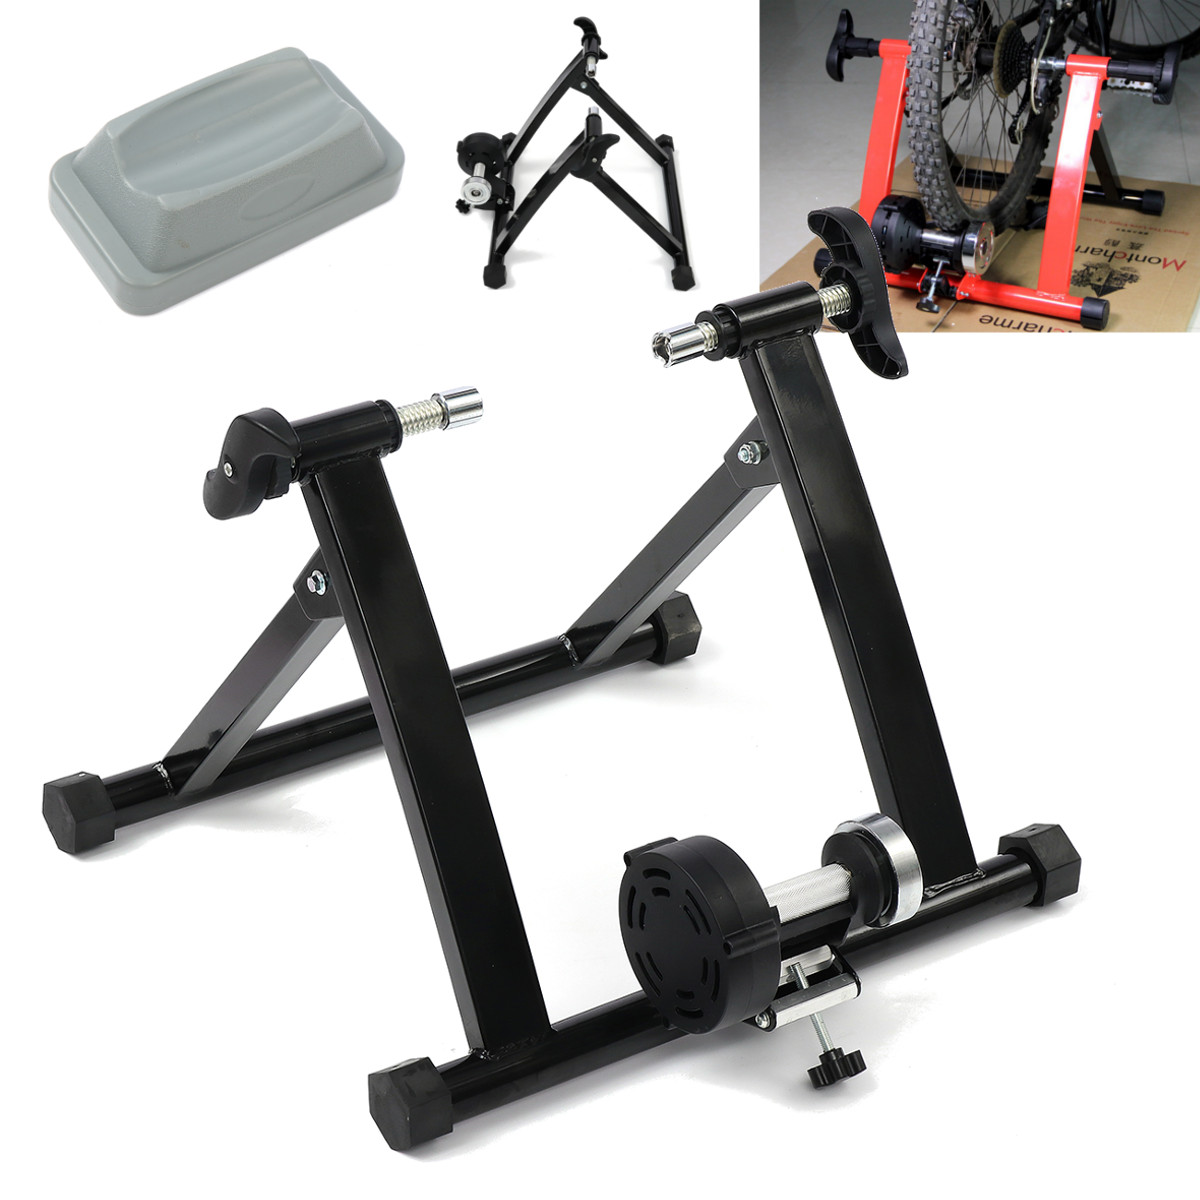 Bike Trainer Stand Magnetic Resistance Bicycle Exercise Workout Black